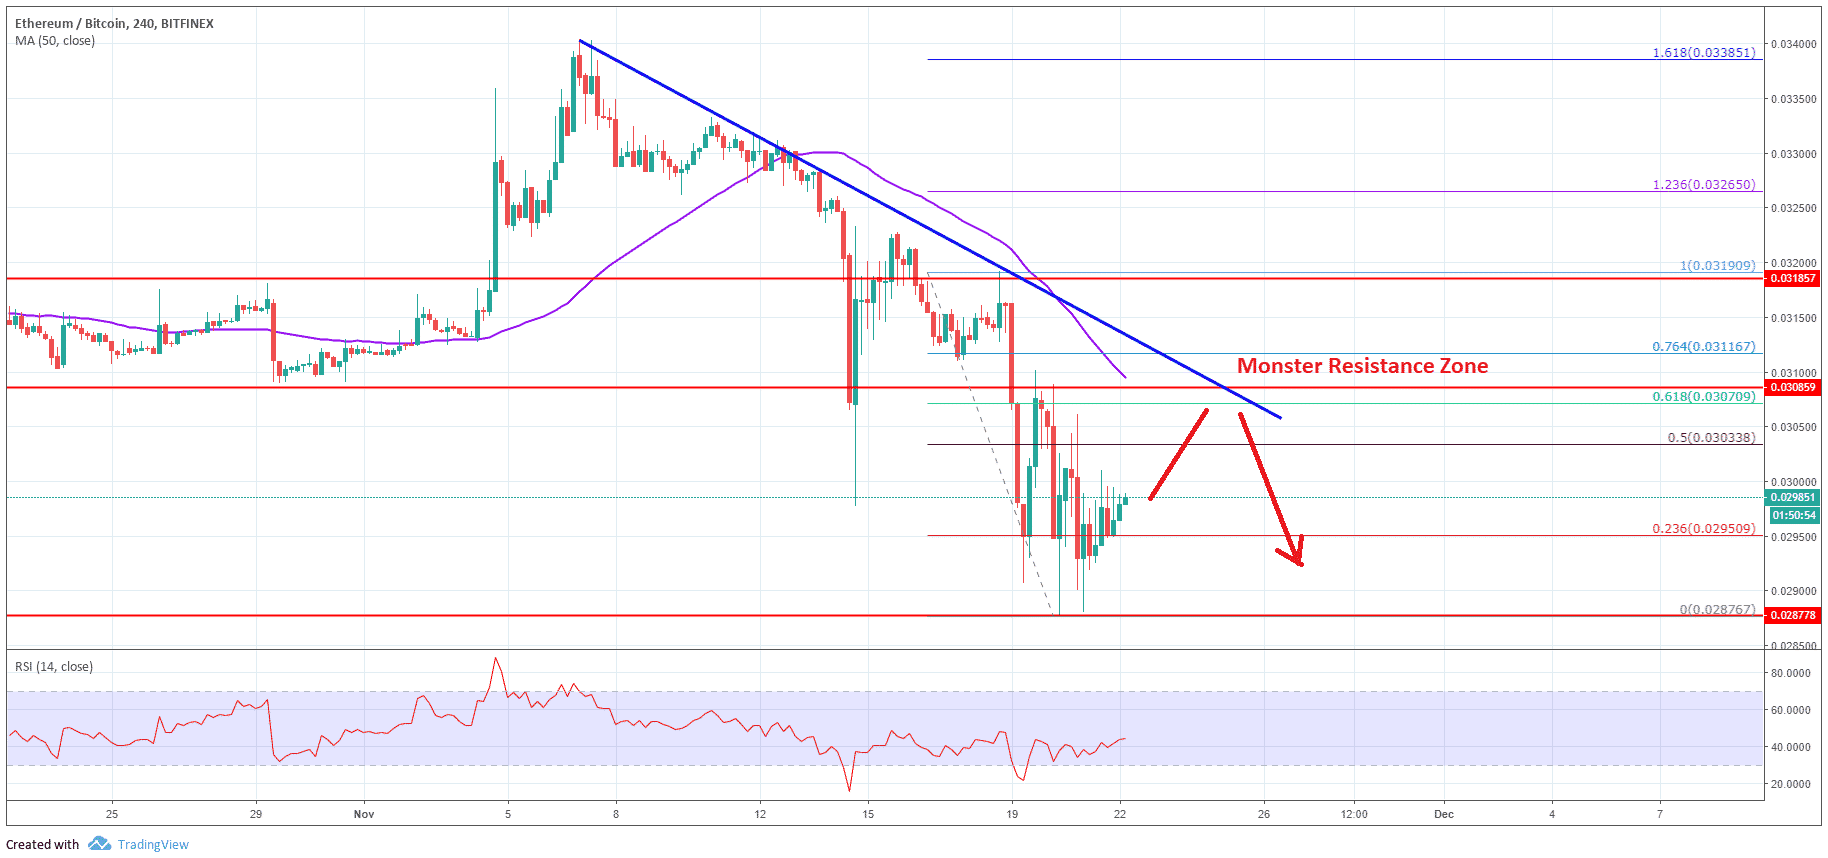 ETH/BTC Analysis: Ethereum Price Remains Sell On Rallies Vs Bitcoin